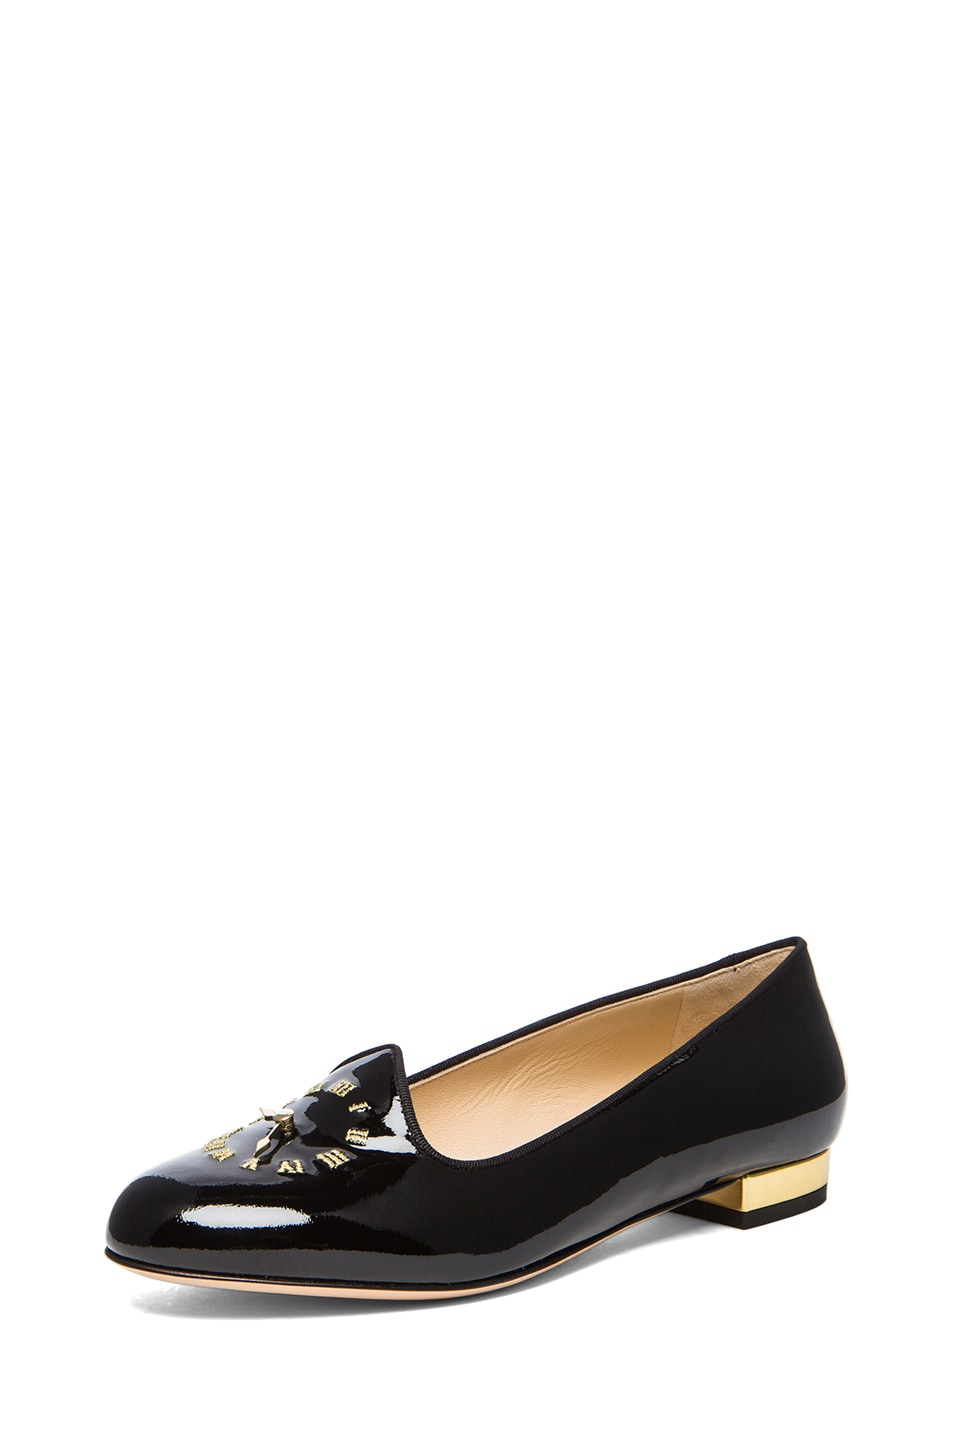 Image 2 of Charlotte Olympia Fashionably Late Patent Leather Flats in Black